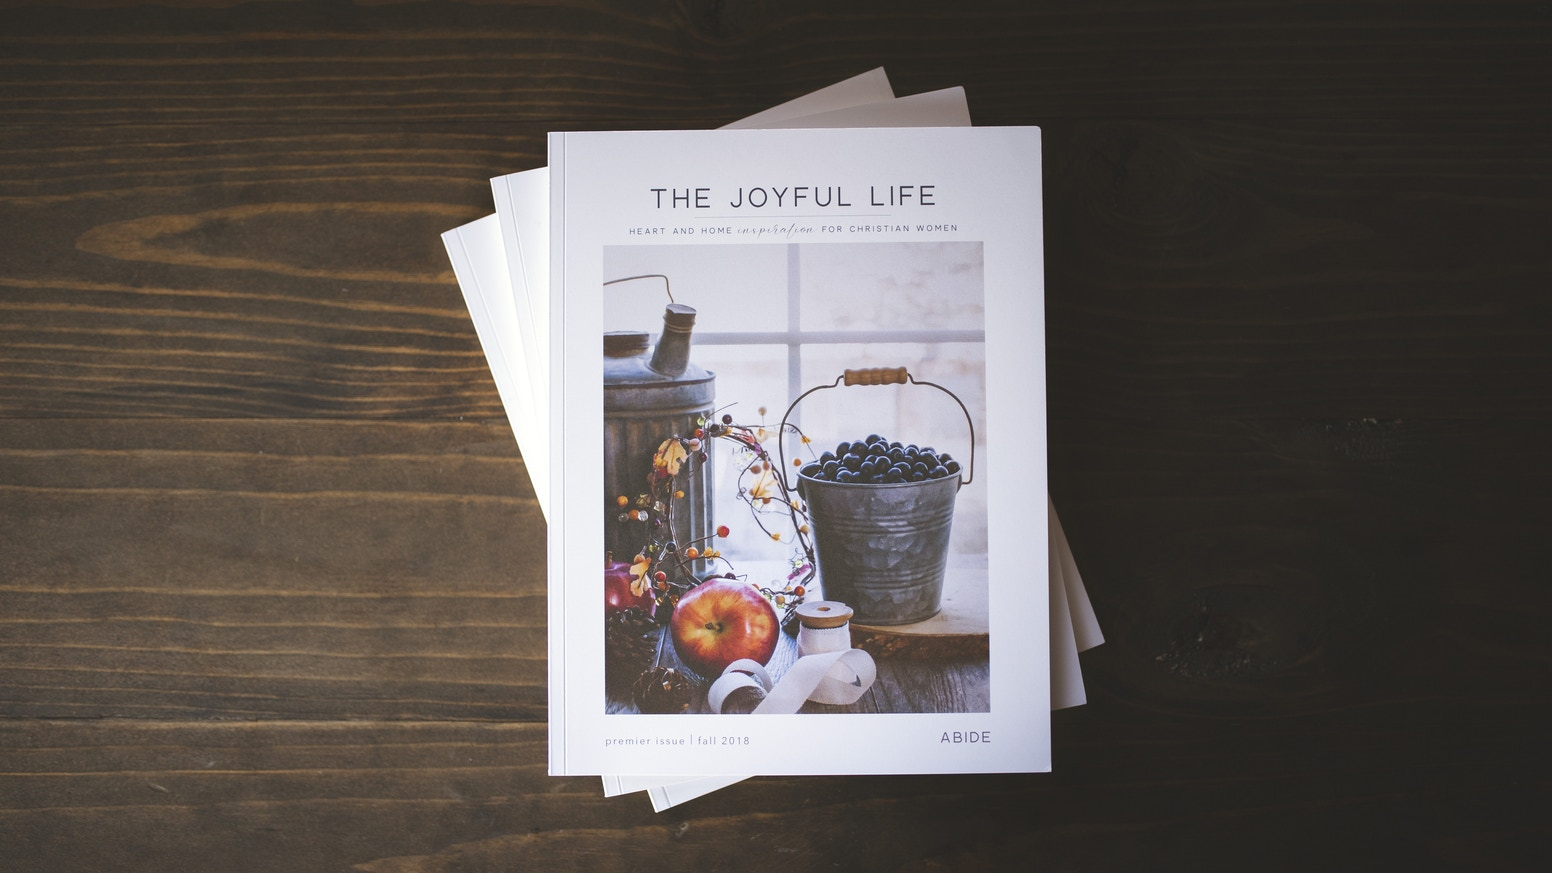 Heart & Home Inspiration for Christian women seeking the JOY found by inviting JESUS into their everyday lives.